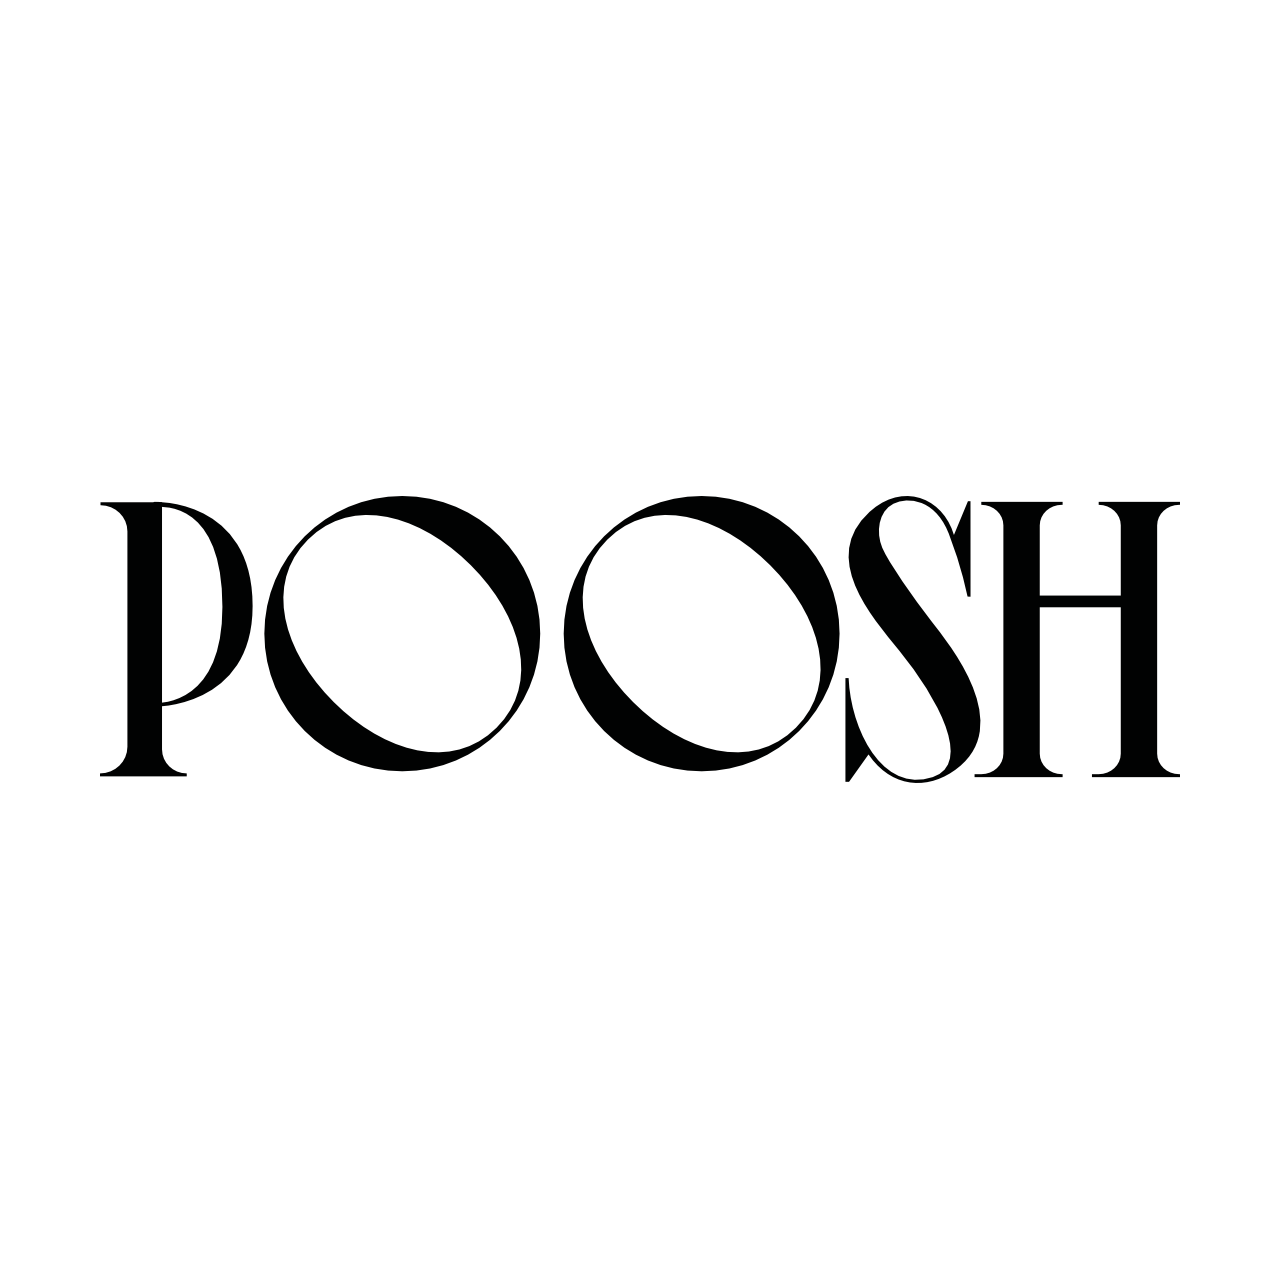 Image result for poosh